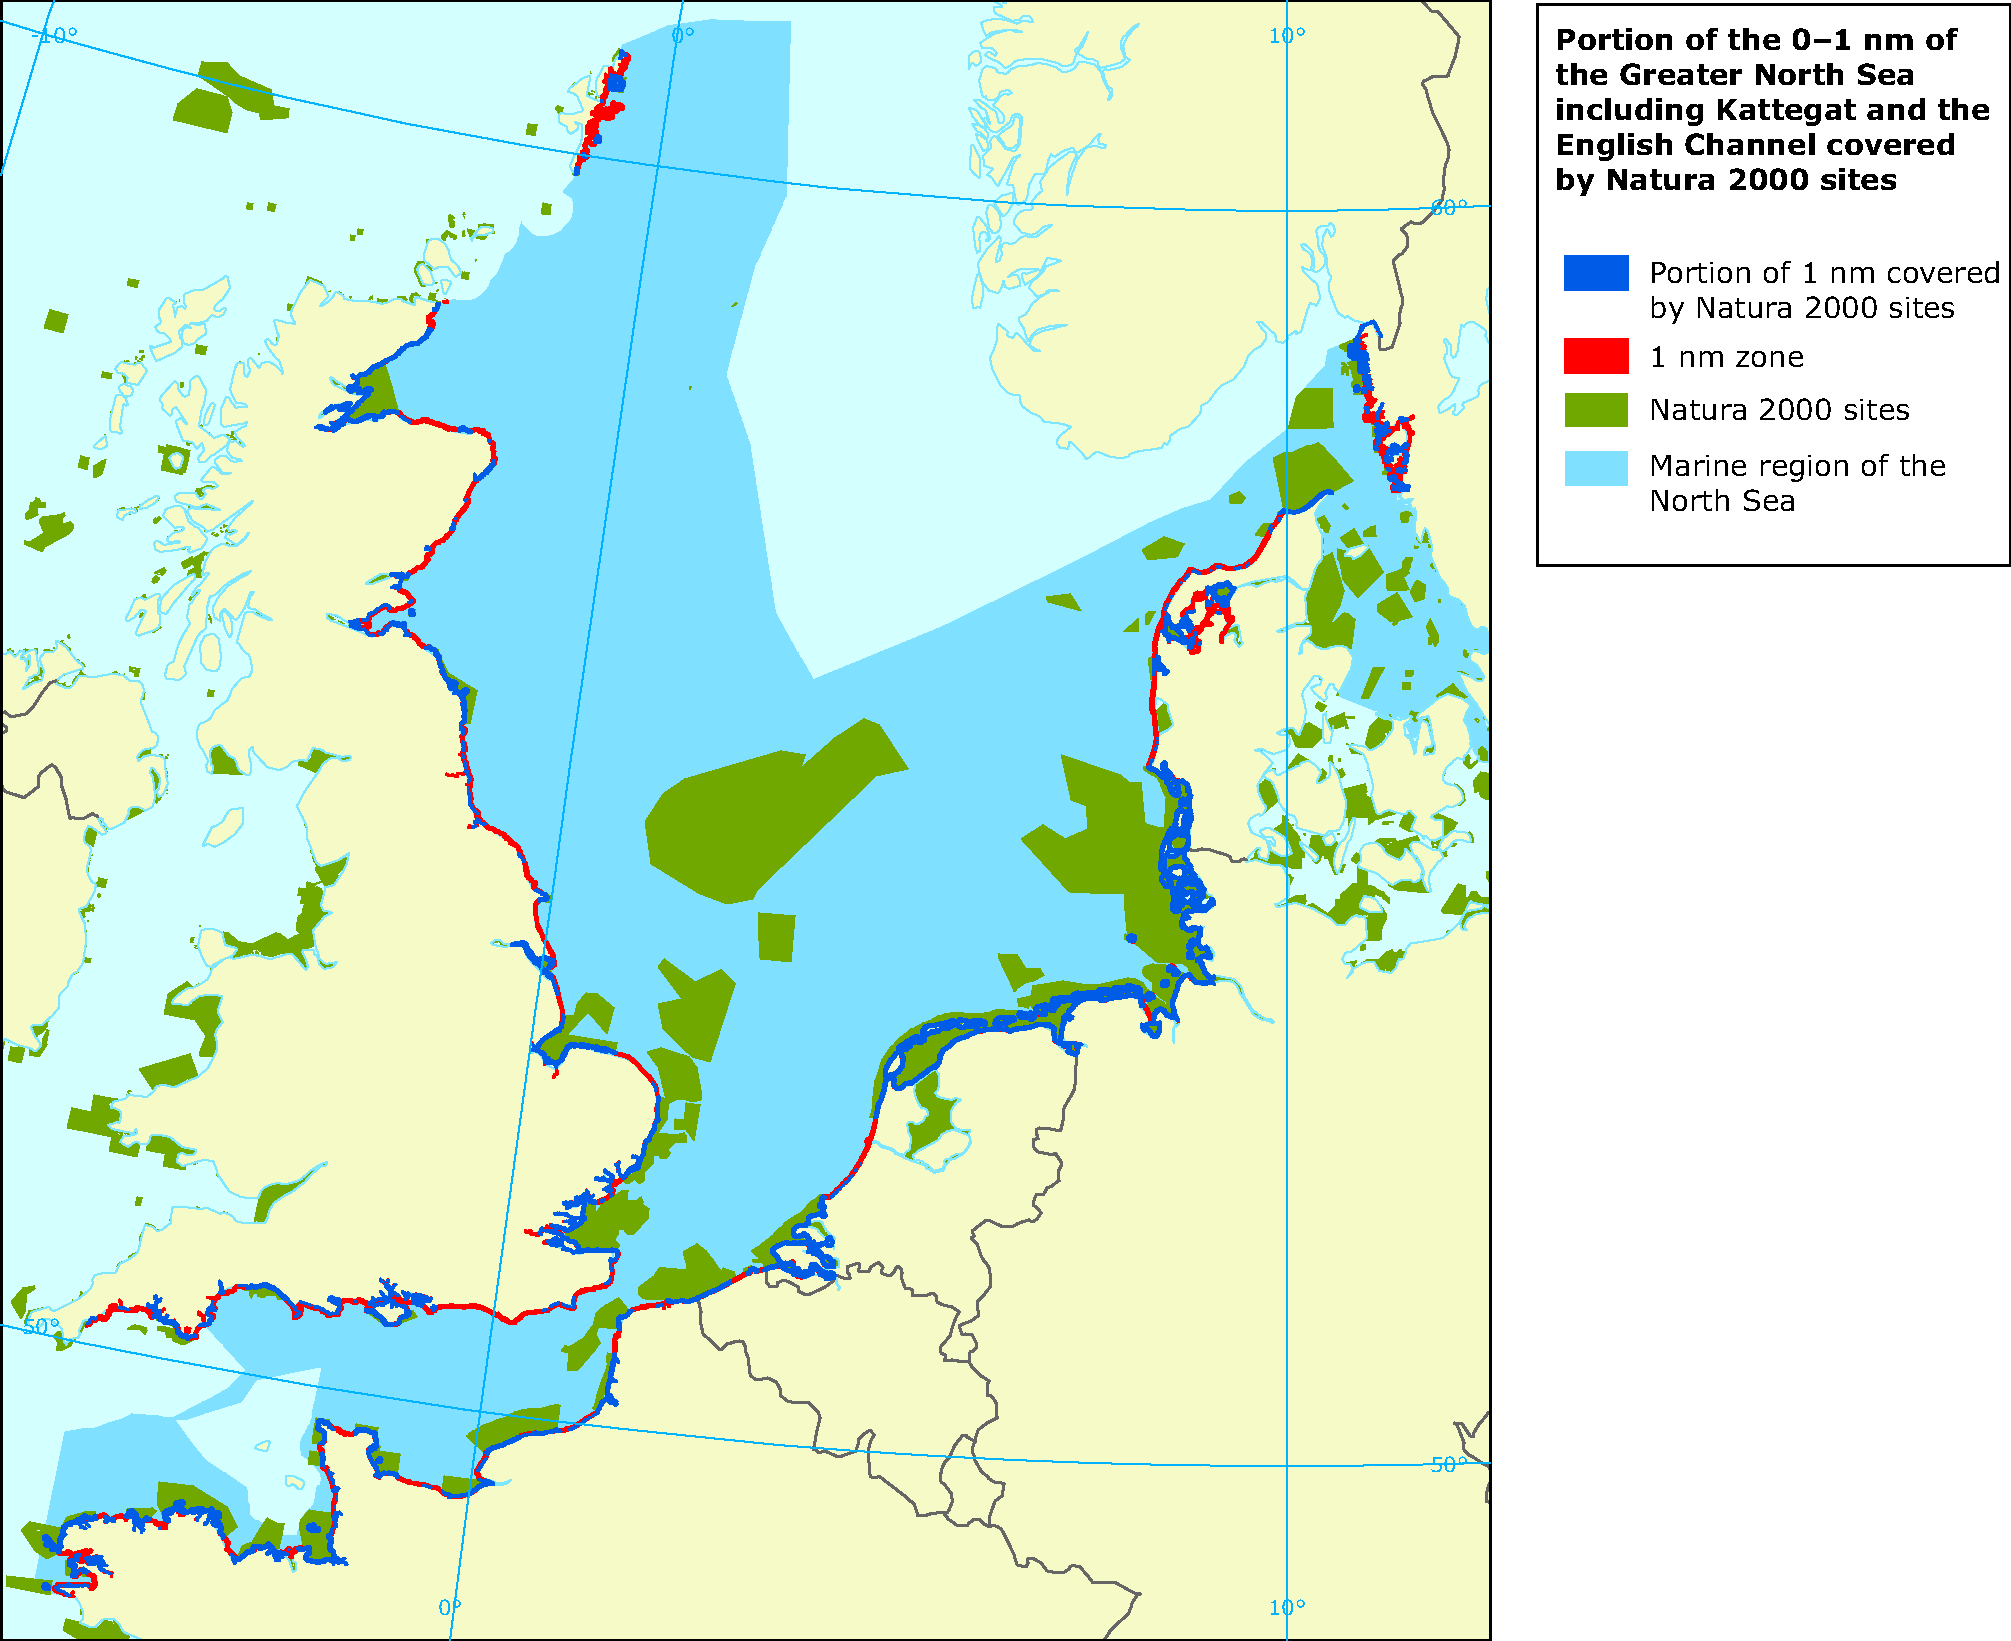 Proportion of coastal waters (0 to 1 nm from the coast) of ... on map of europe, map of normandy, map of caspian sea, map of strait of hormuz, map of gulf of bothnia, map of arctic ocean, map of england, map of celtic sea, map of wales, map of river thames, map of baltic sea, map of black sea, map of germany, map of moscow, map of rome, map of north sea, map of ural mountains, map of adriatic sea, map of bay of biscay, map of danube river,